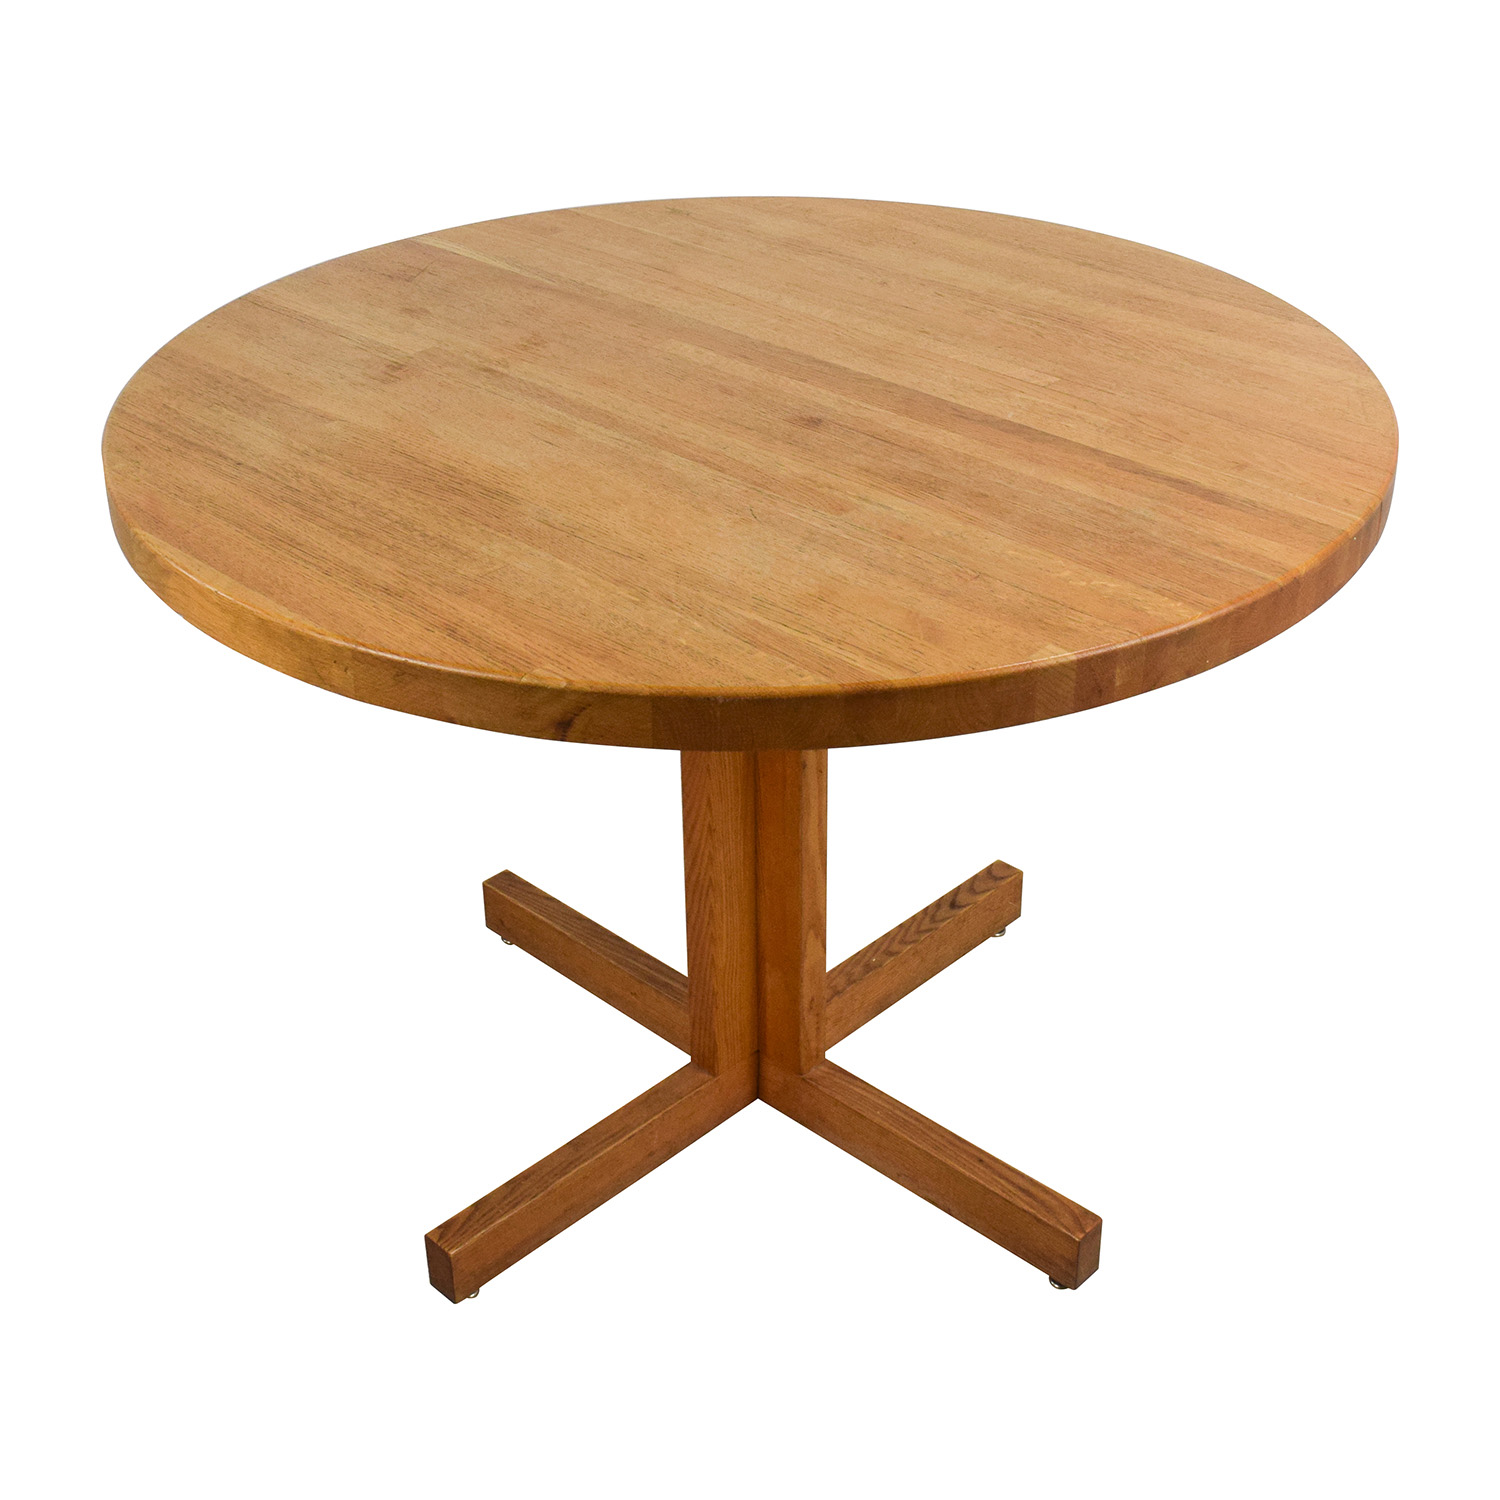 Solid Oak Round Table Price